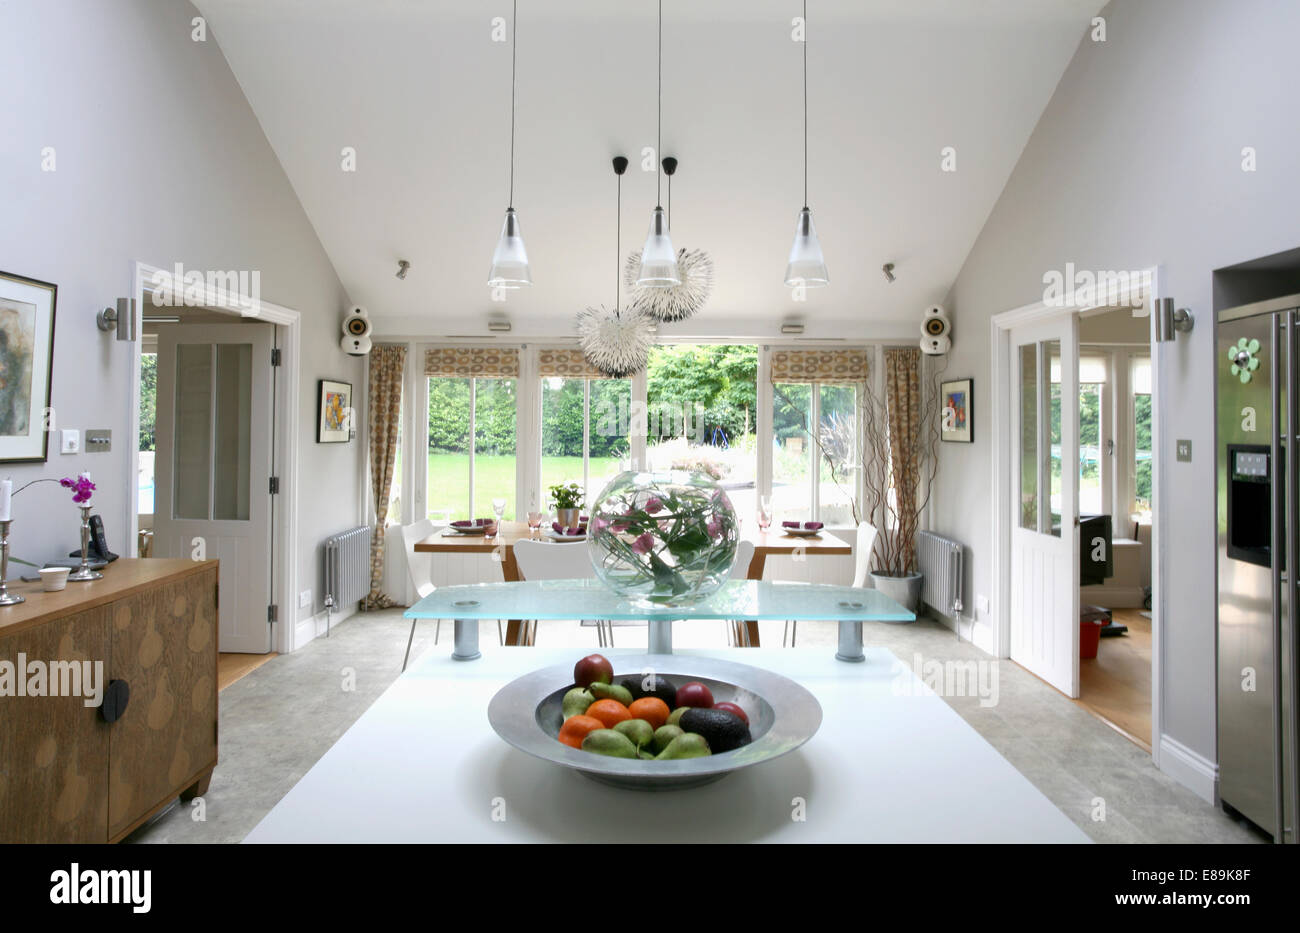 Pendant lighting above island unit in large modern kitchen and pendant lighting above island unit in large modern kitchen and dining room aloadofball Image collections